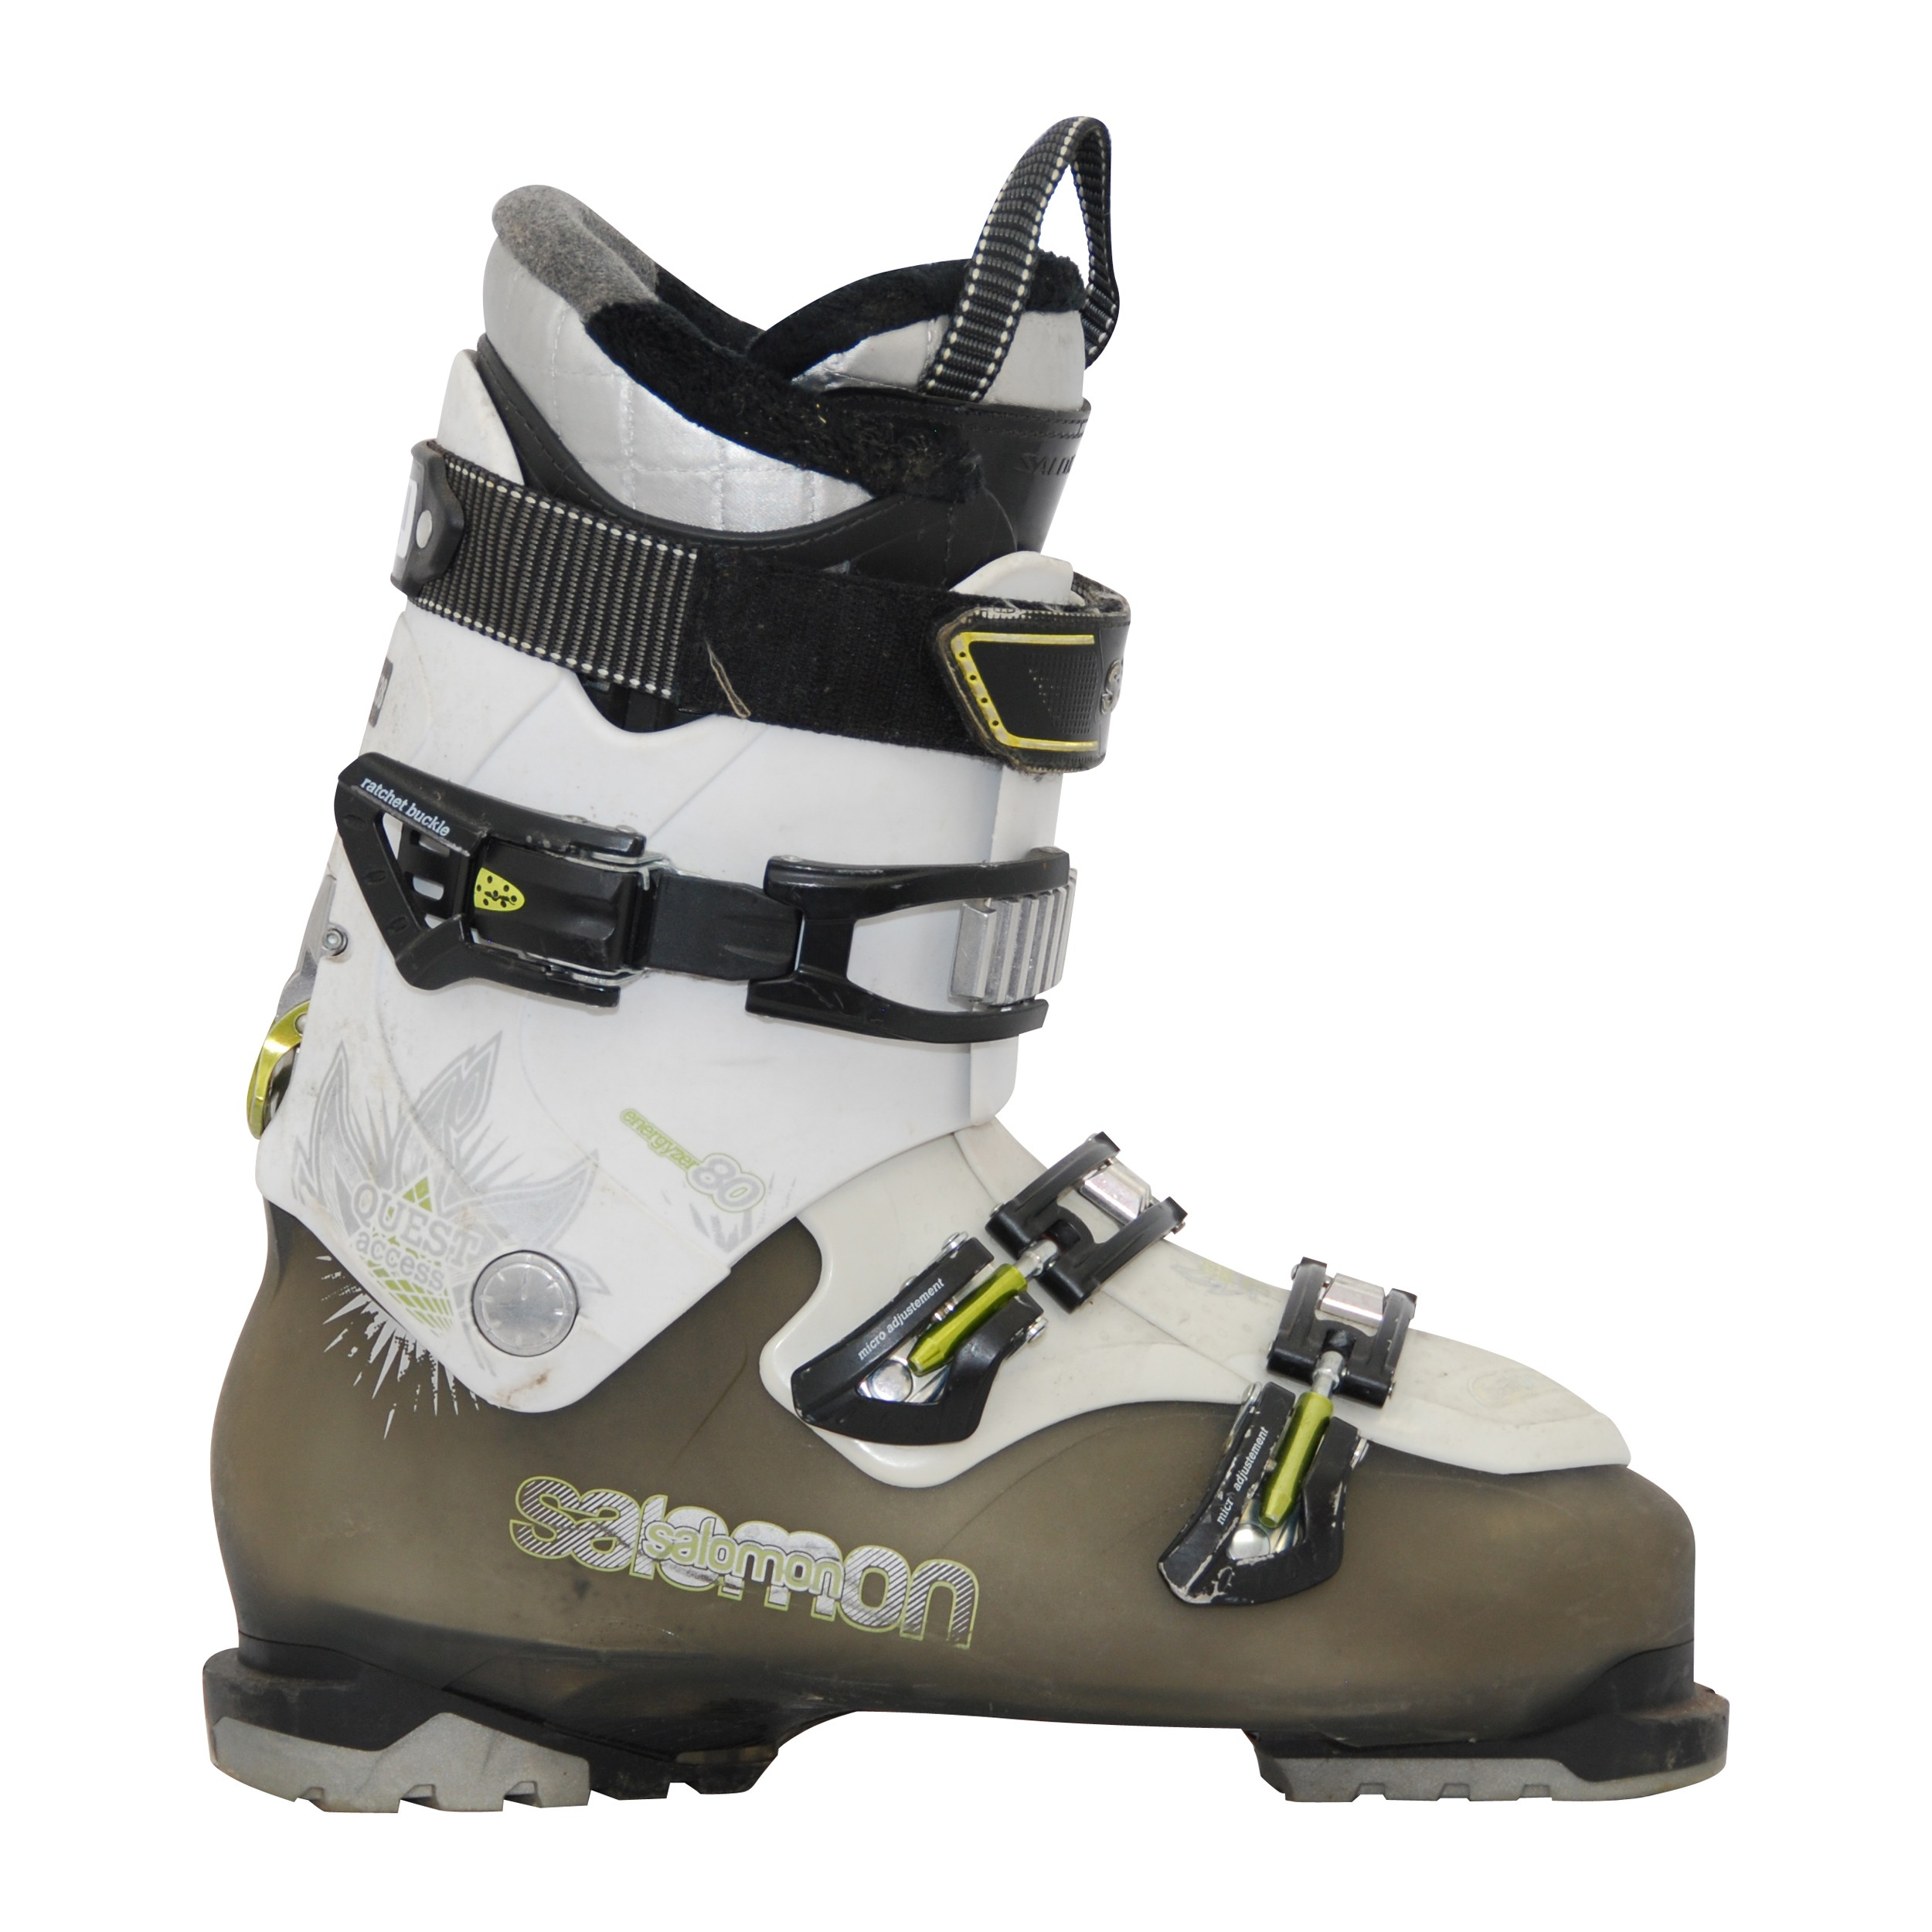 Ski boot Occasion Salomon quest access 80 khakiwhite black